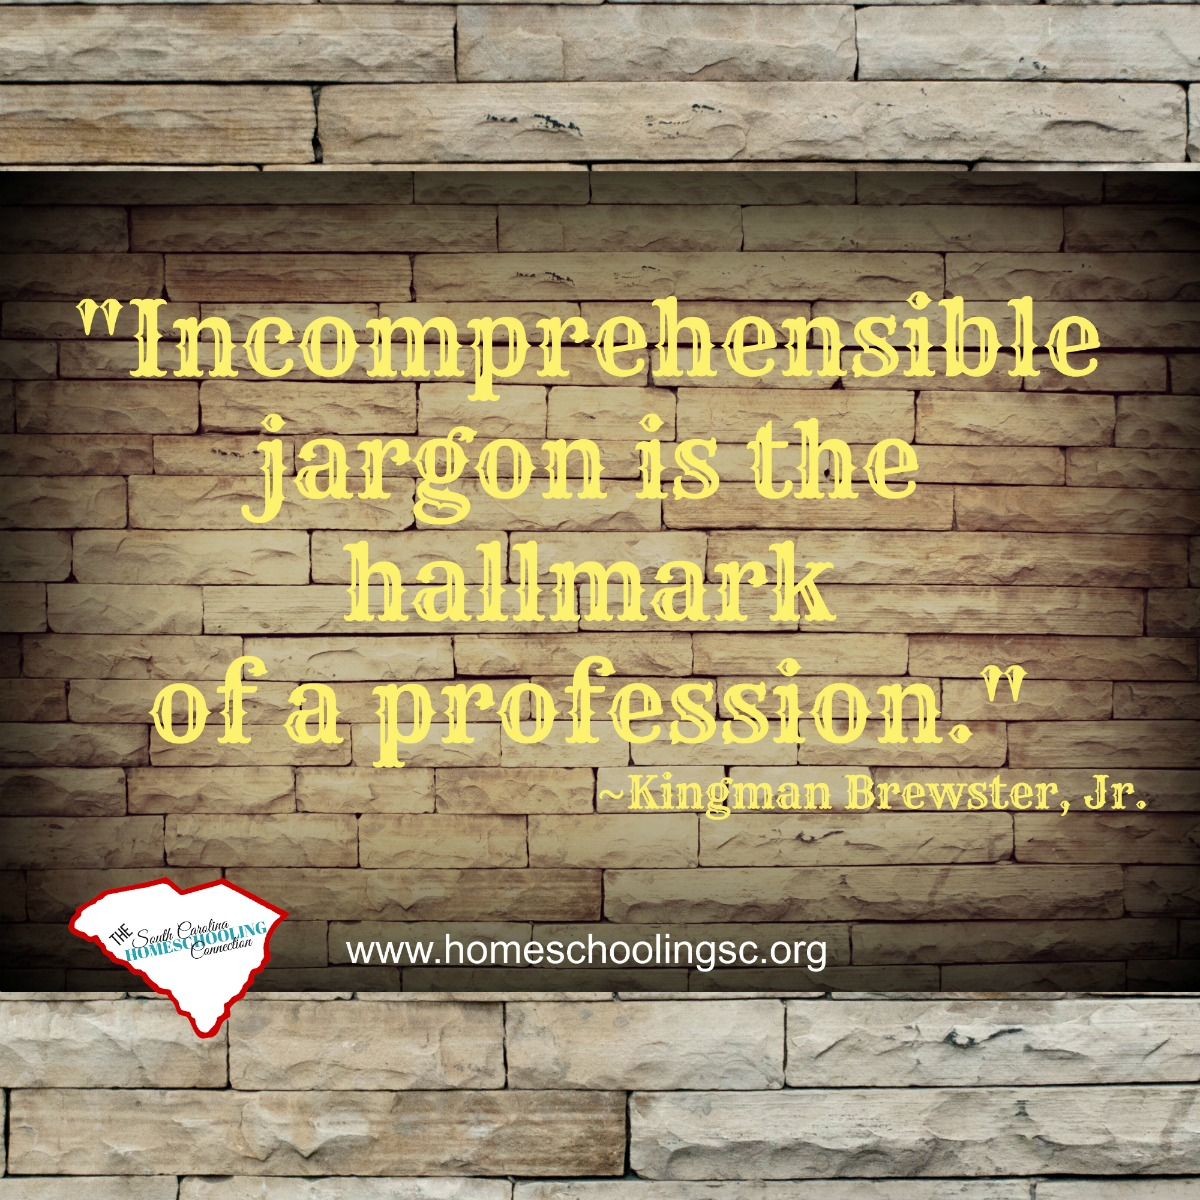 Homeschool Lingo is proof that home educator's are professionals.